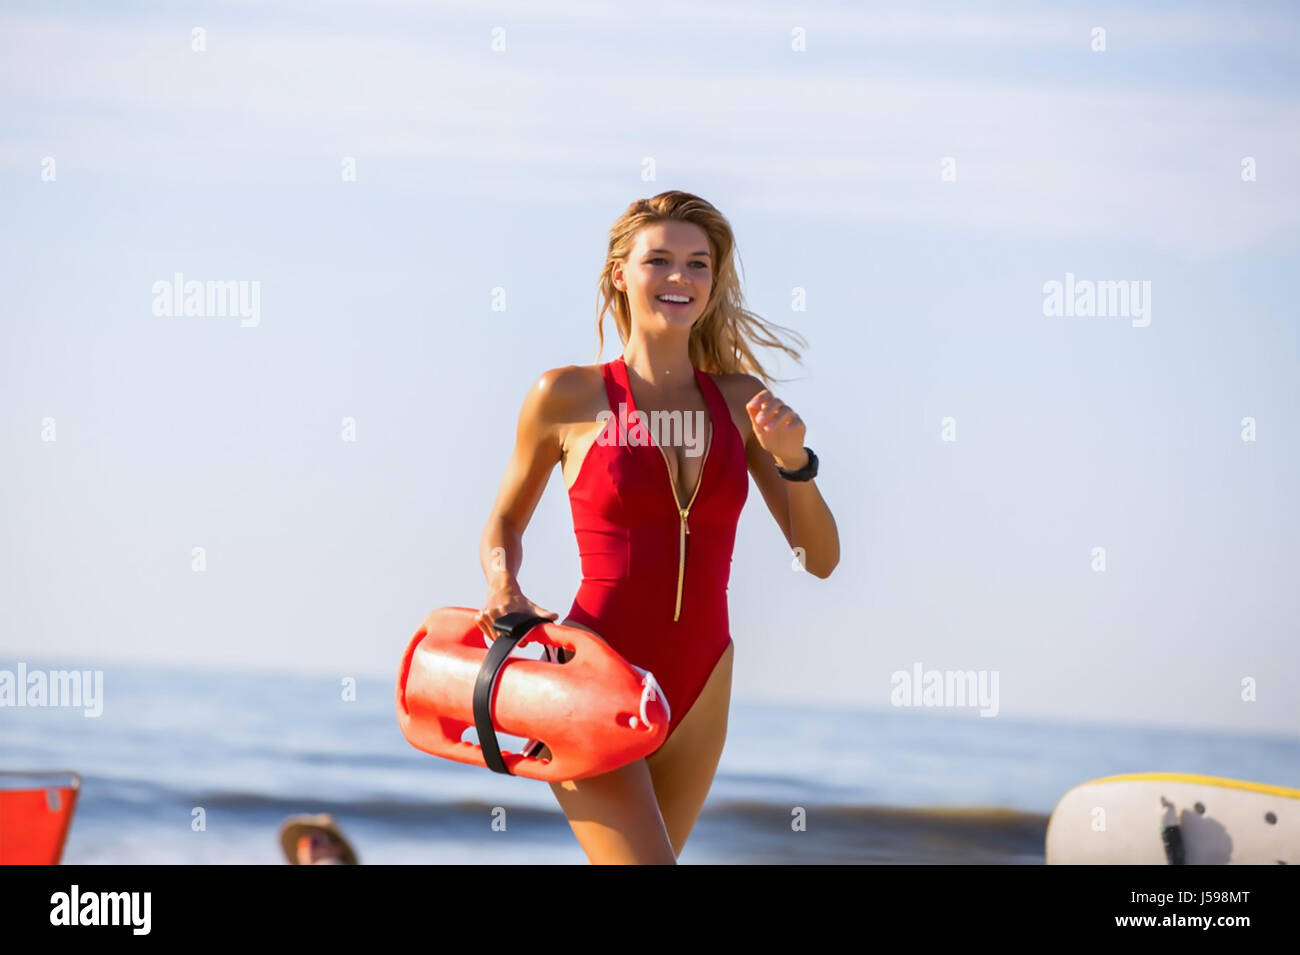 BAYWATCH 2017 Paramount film with Kelly Rohrbach - Stock Image